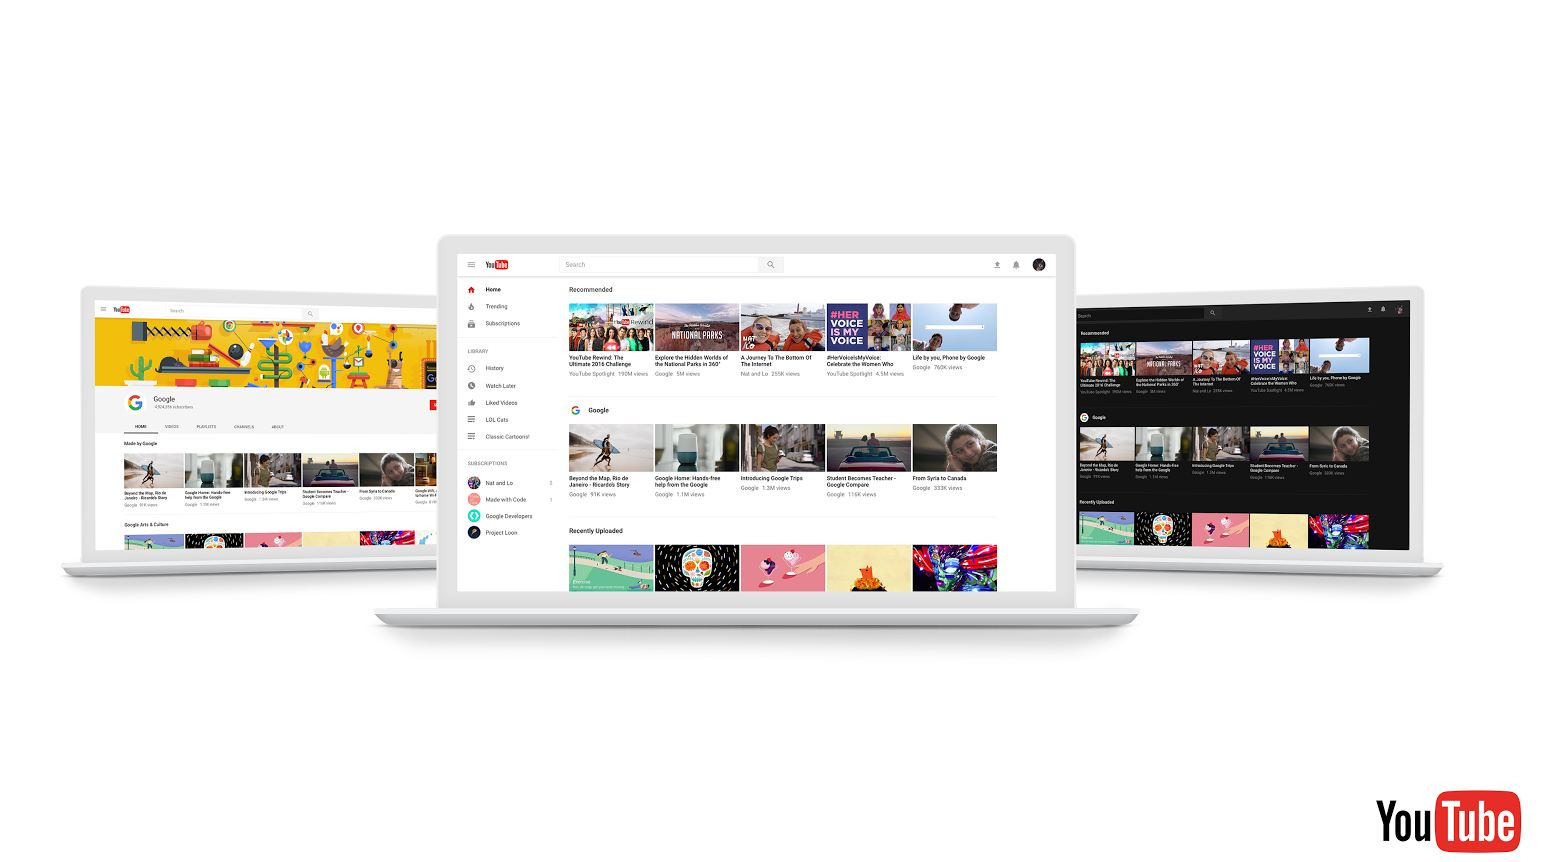 YouTube redesigns desktop site with Material design